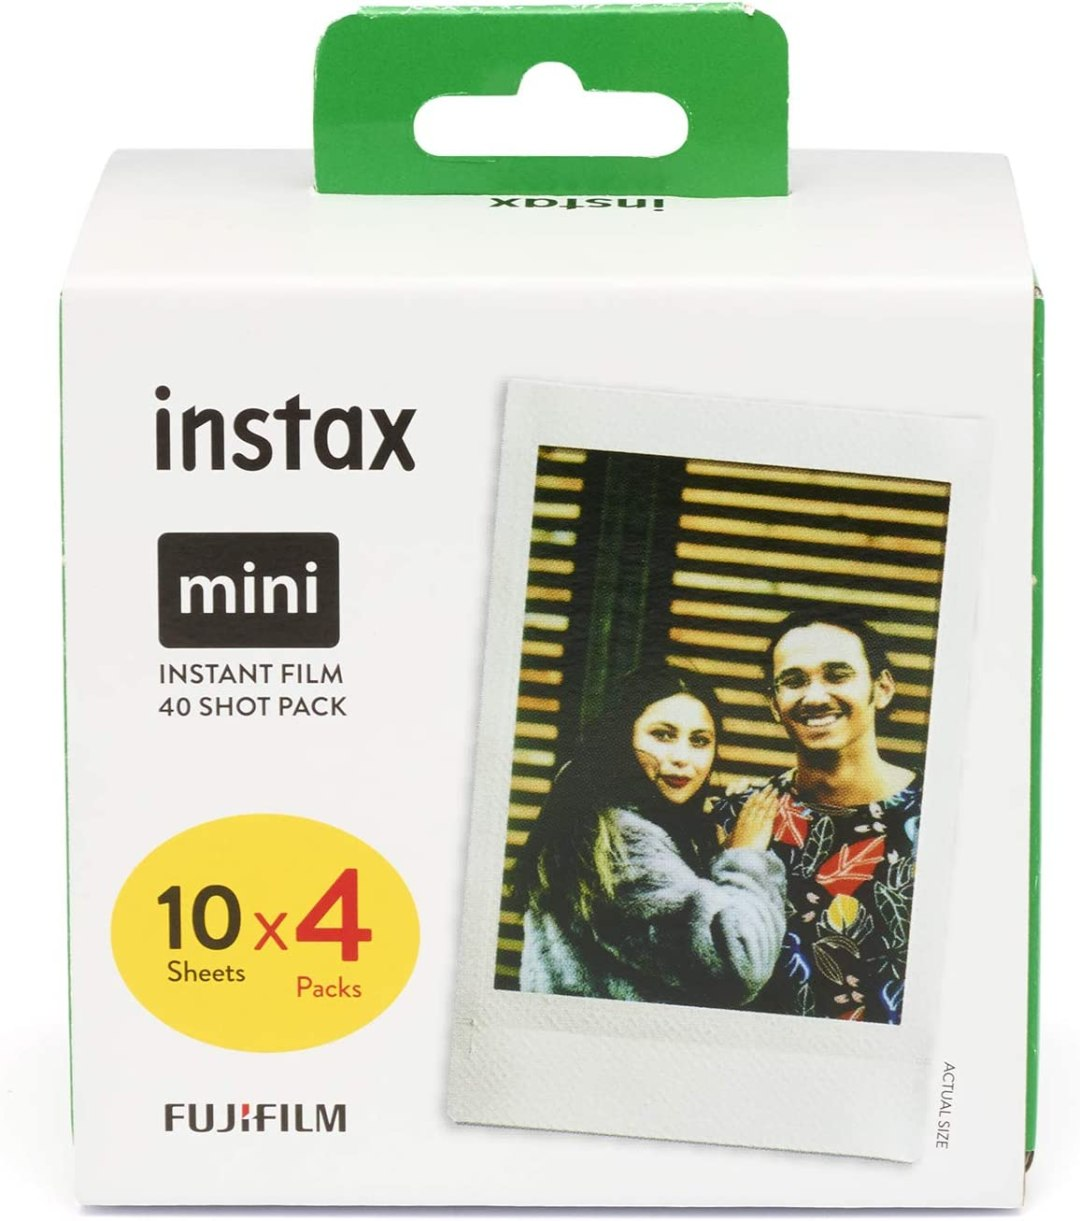 Instax Mini Film, lot de 40 photos